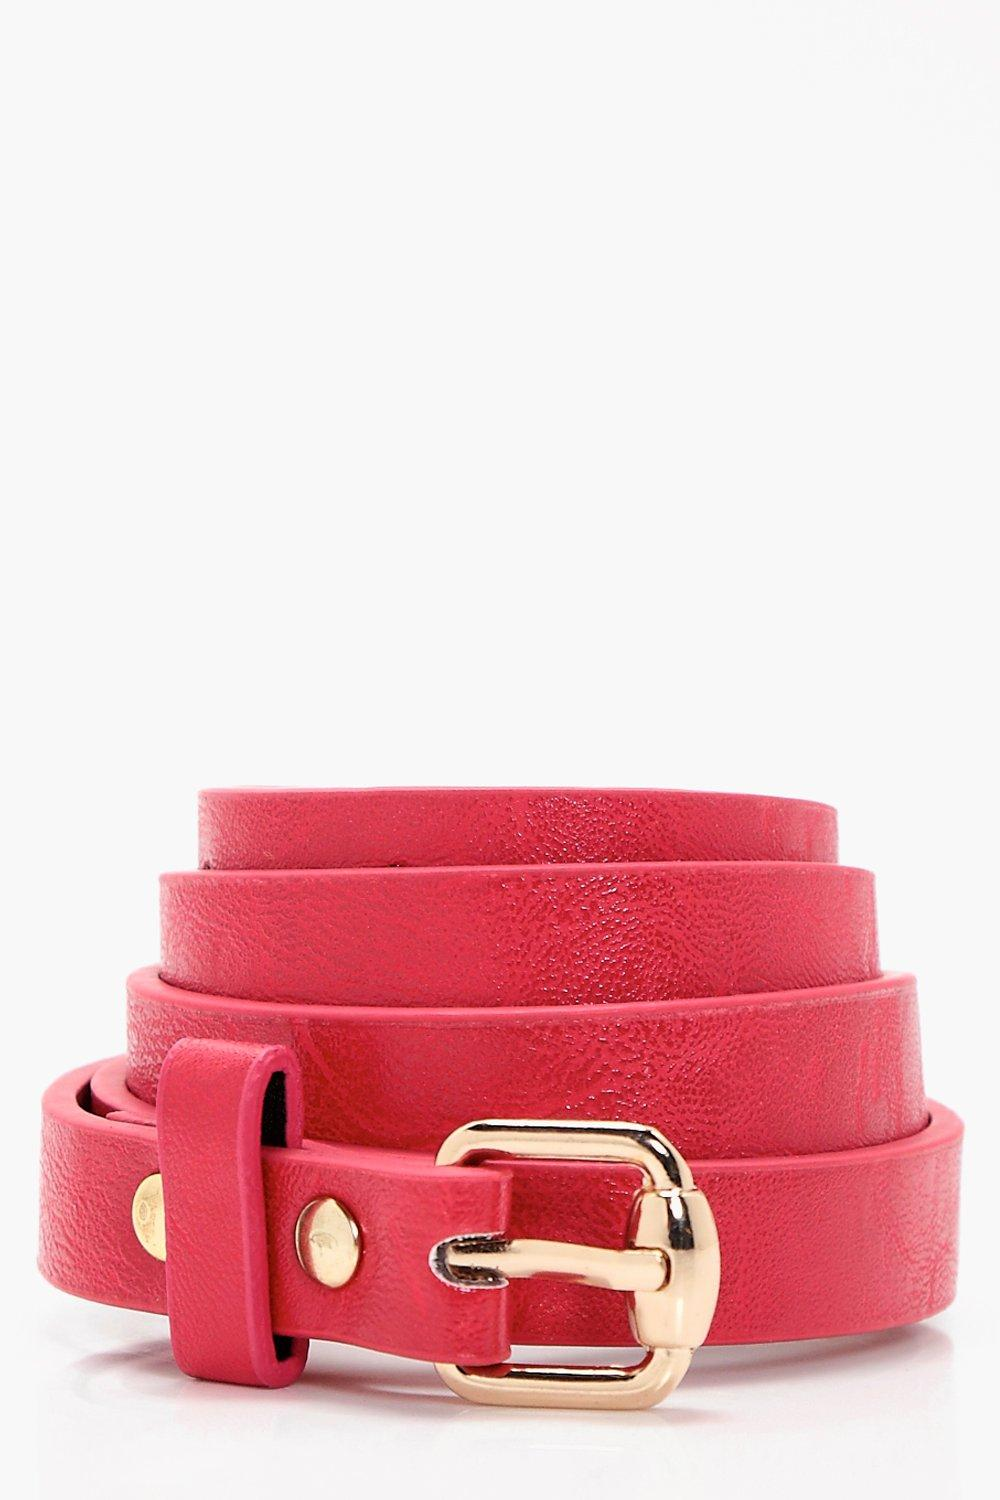 Basic Skinny Belt - red - Laura Basic Skinny Belt